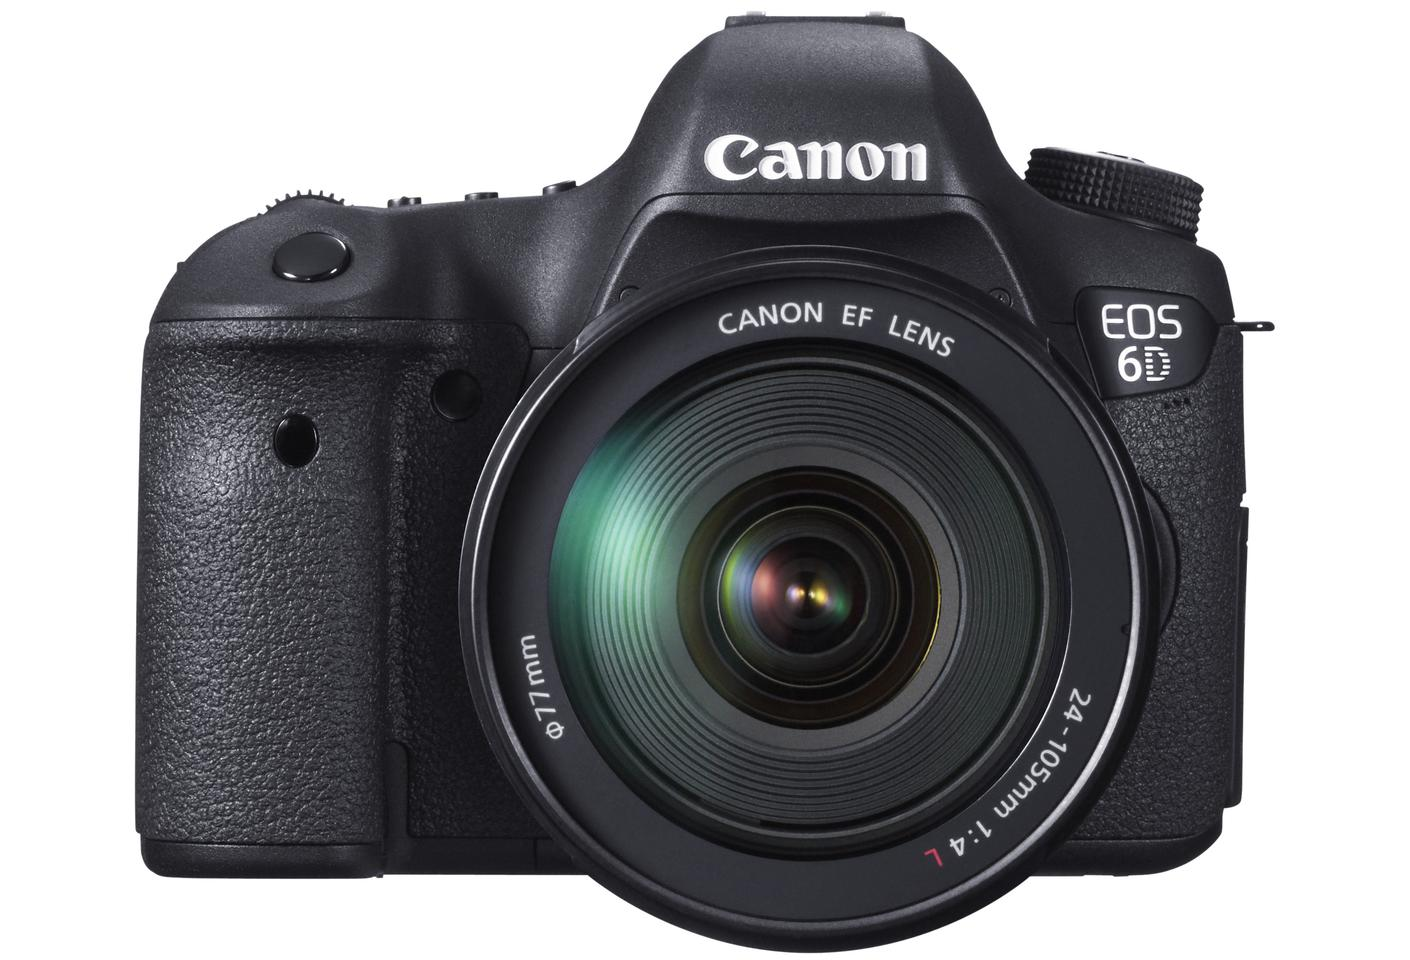 Canon has unveiled the EOS 6D, its smallest and lightest full-frame DSLR